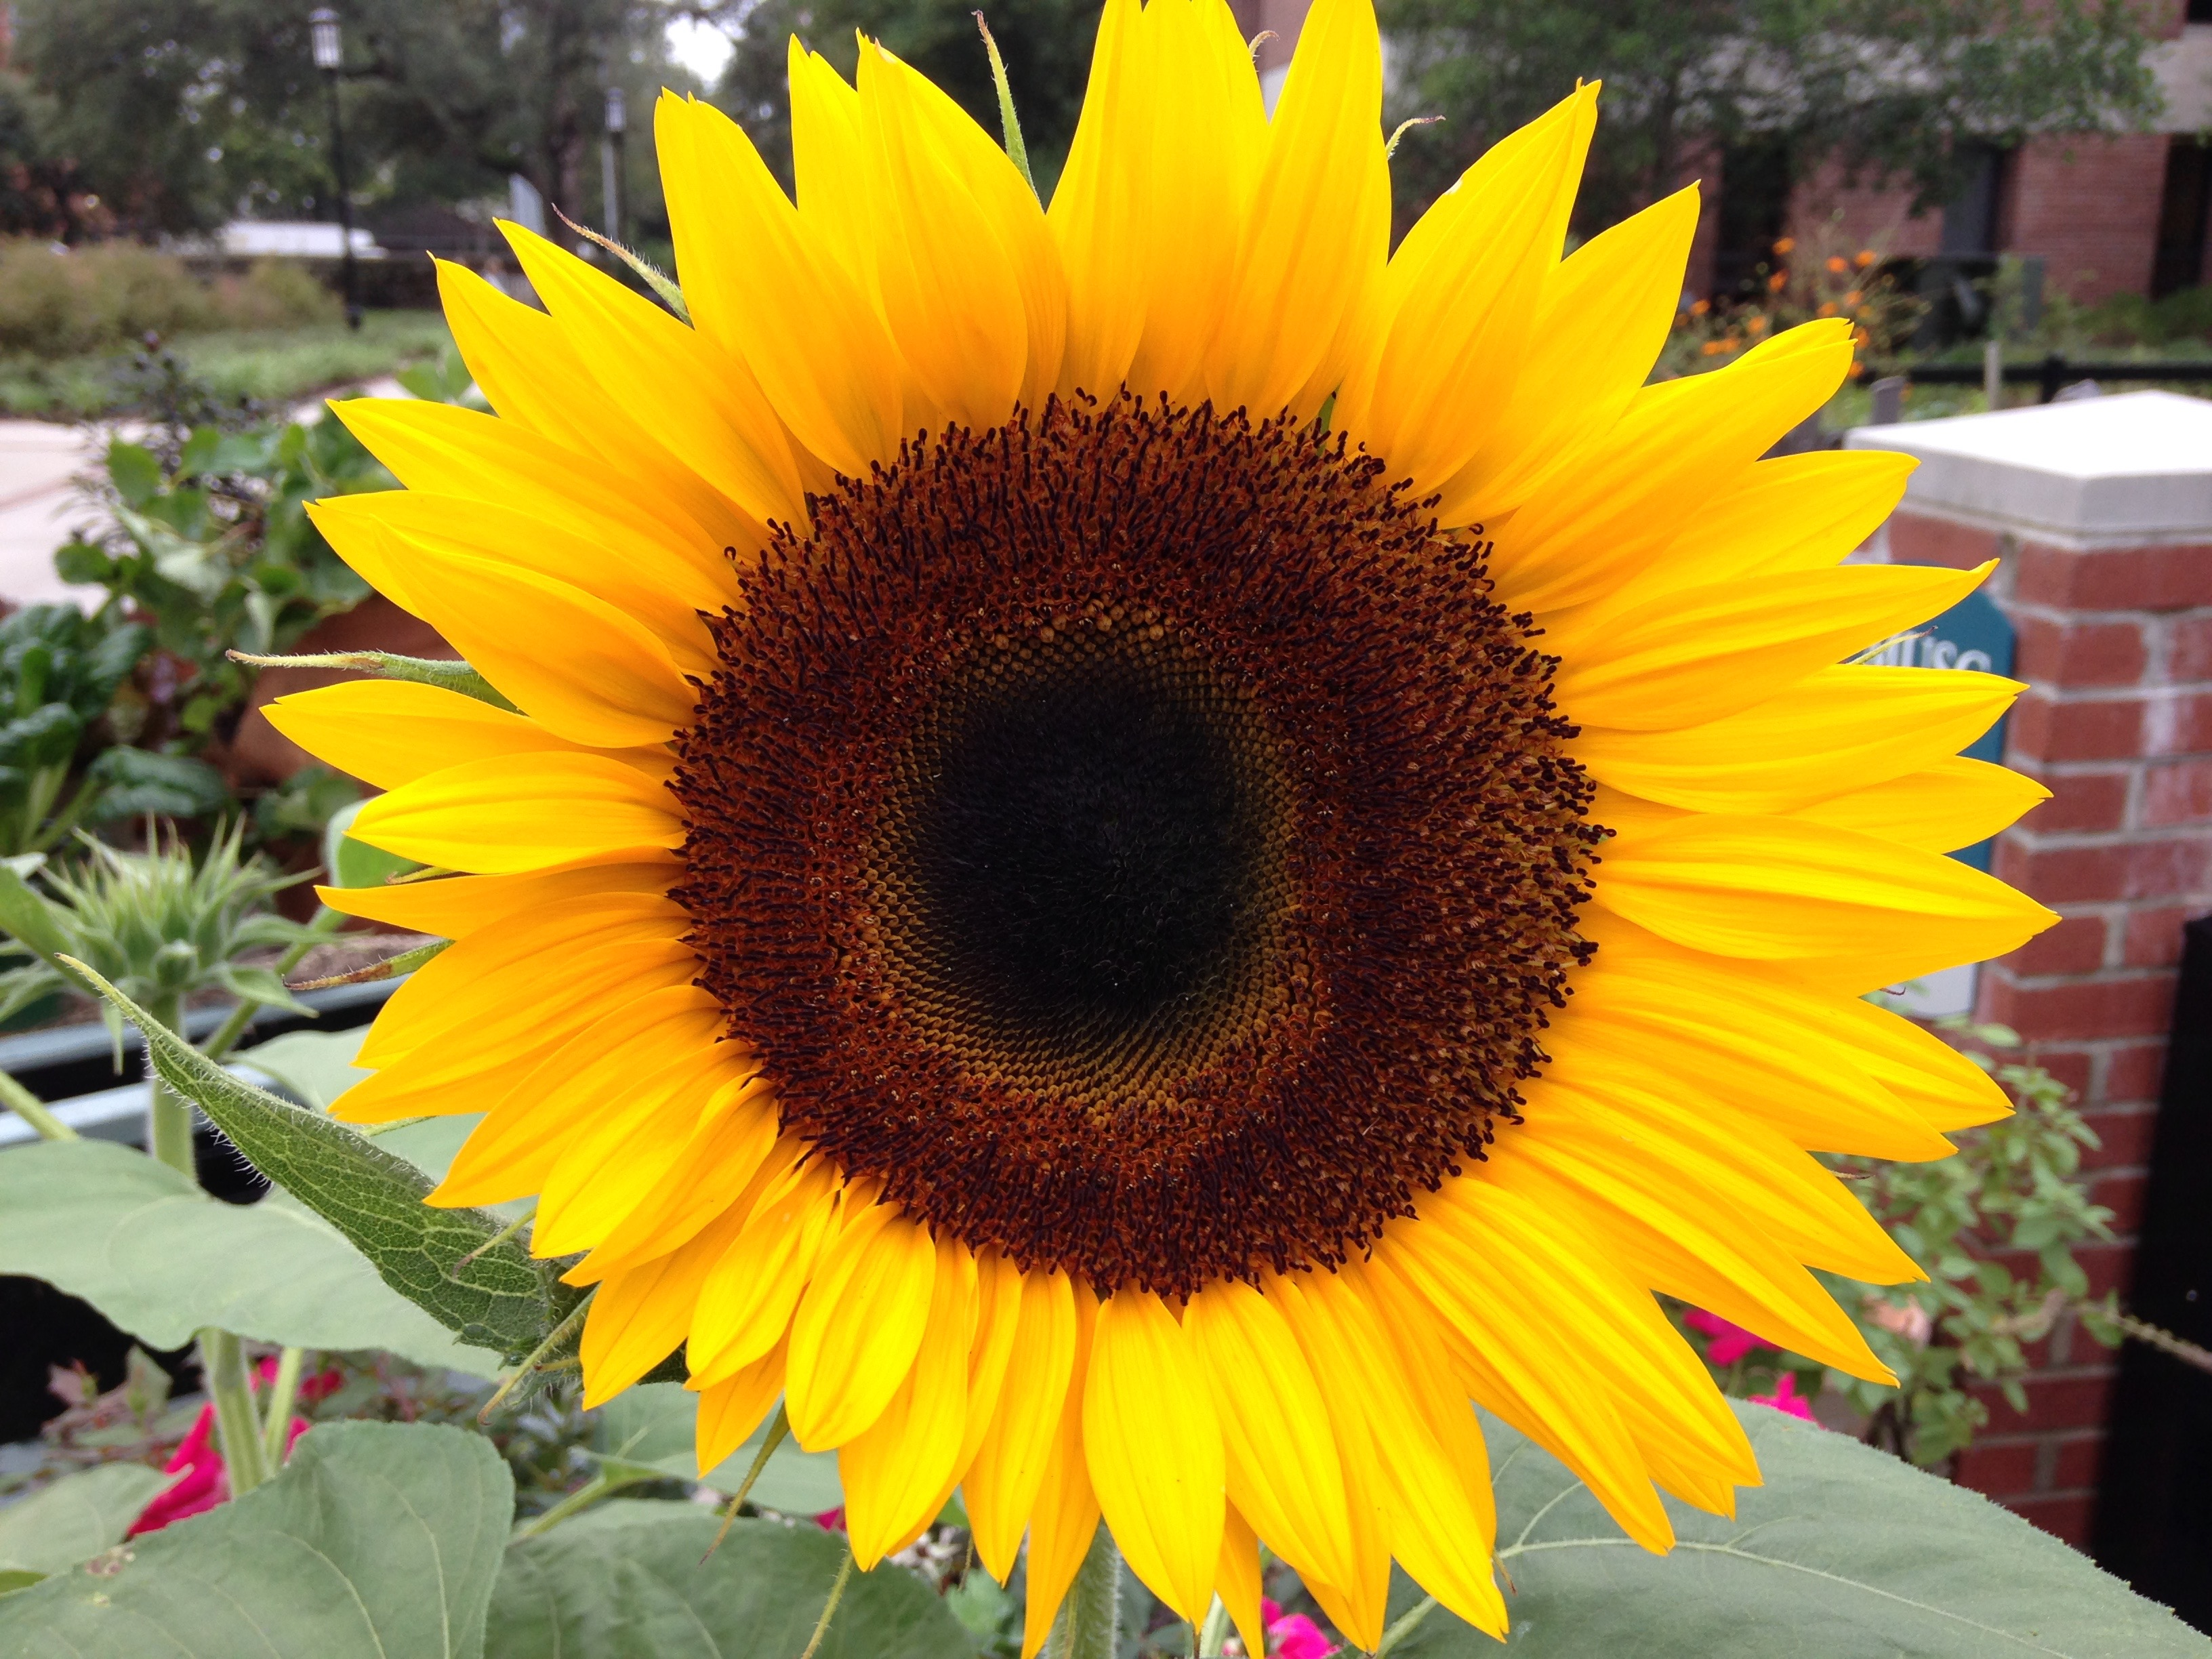 Charleston Residential Landscape Design - Sunflower